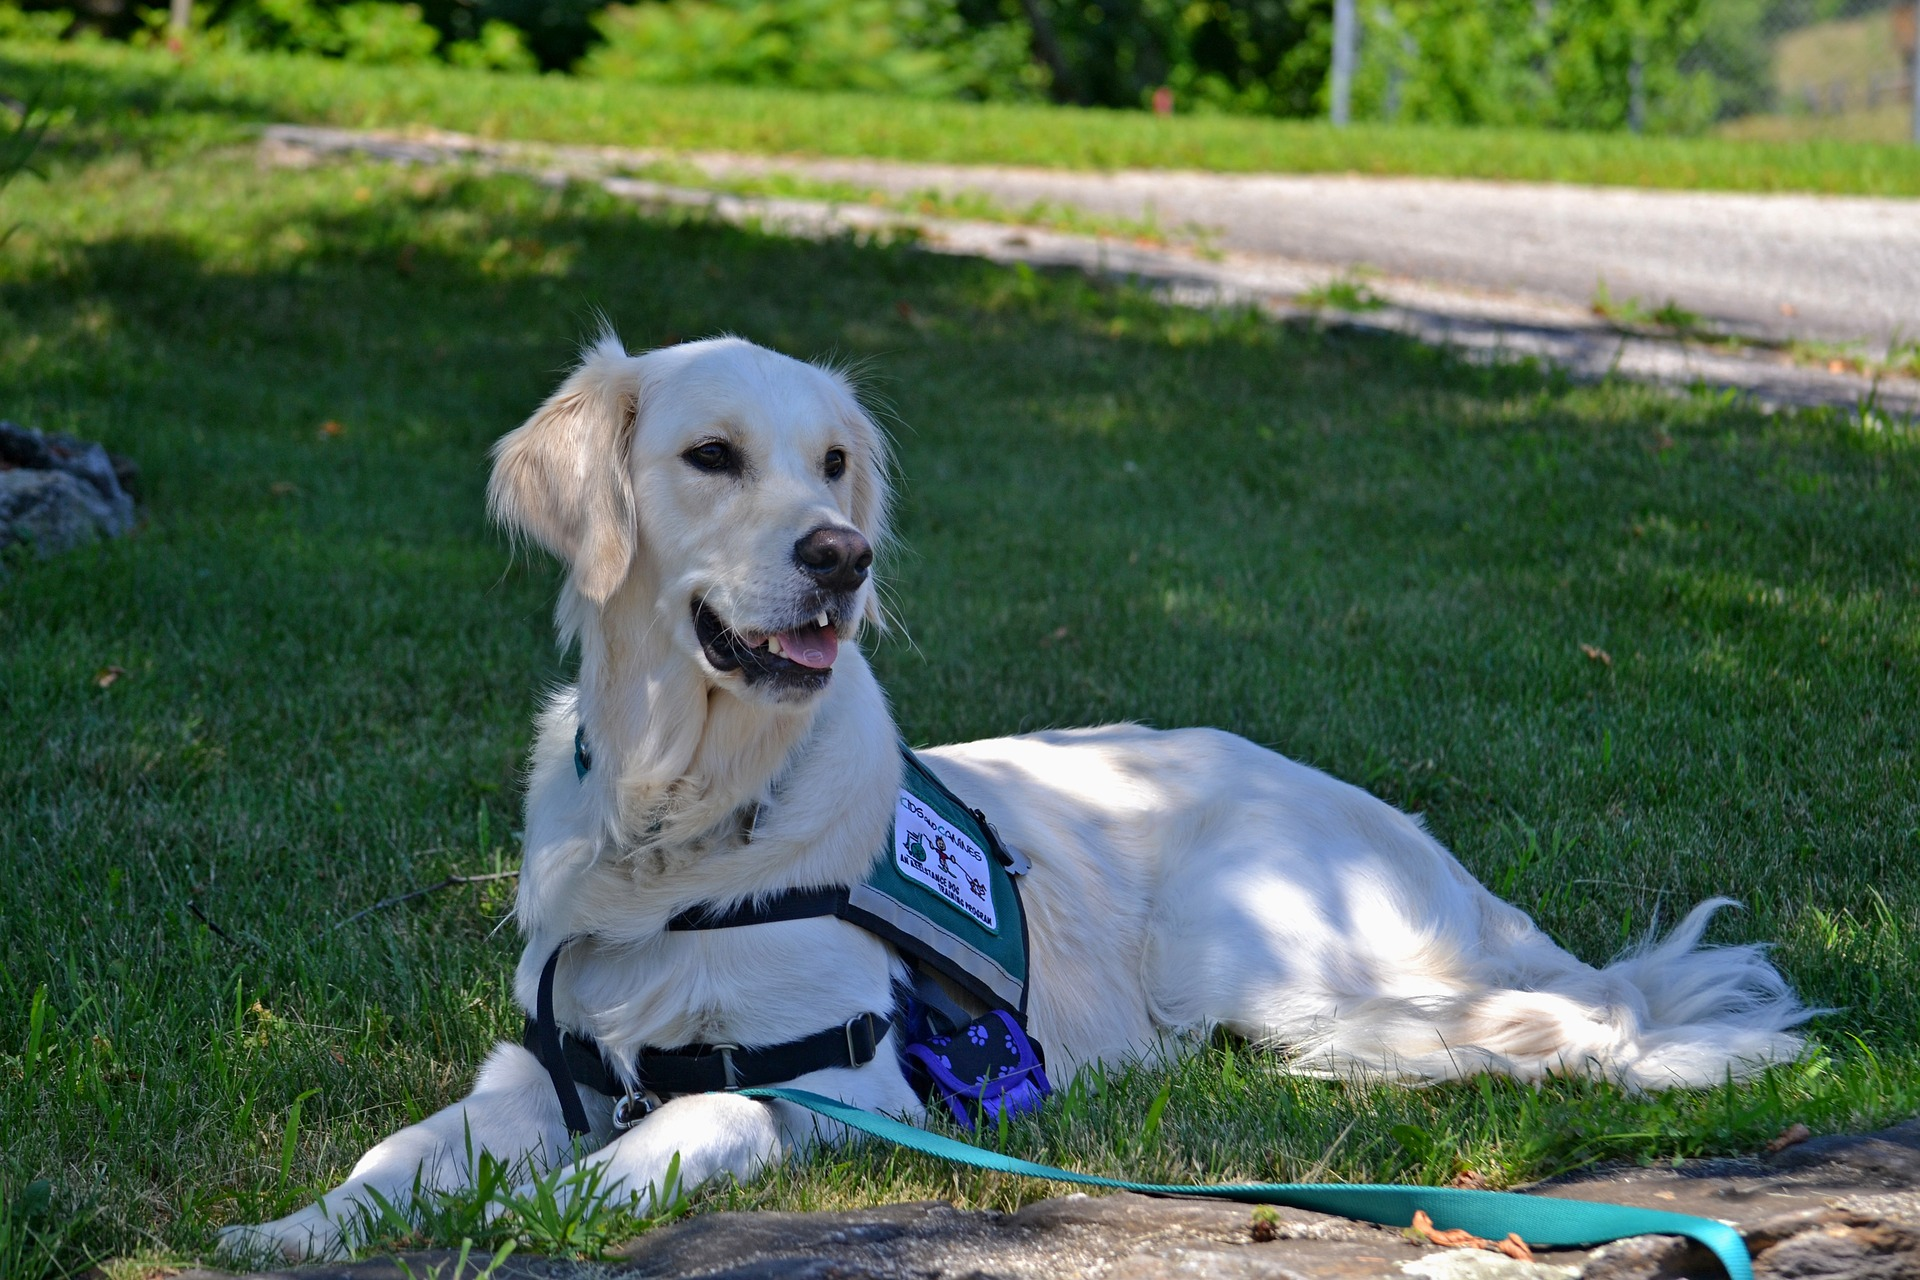 Service Dogs Play an Important Role Whether or Not Society Is